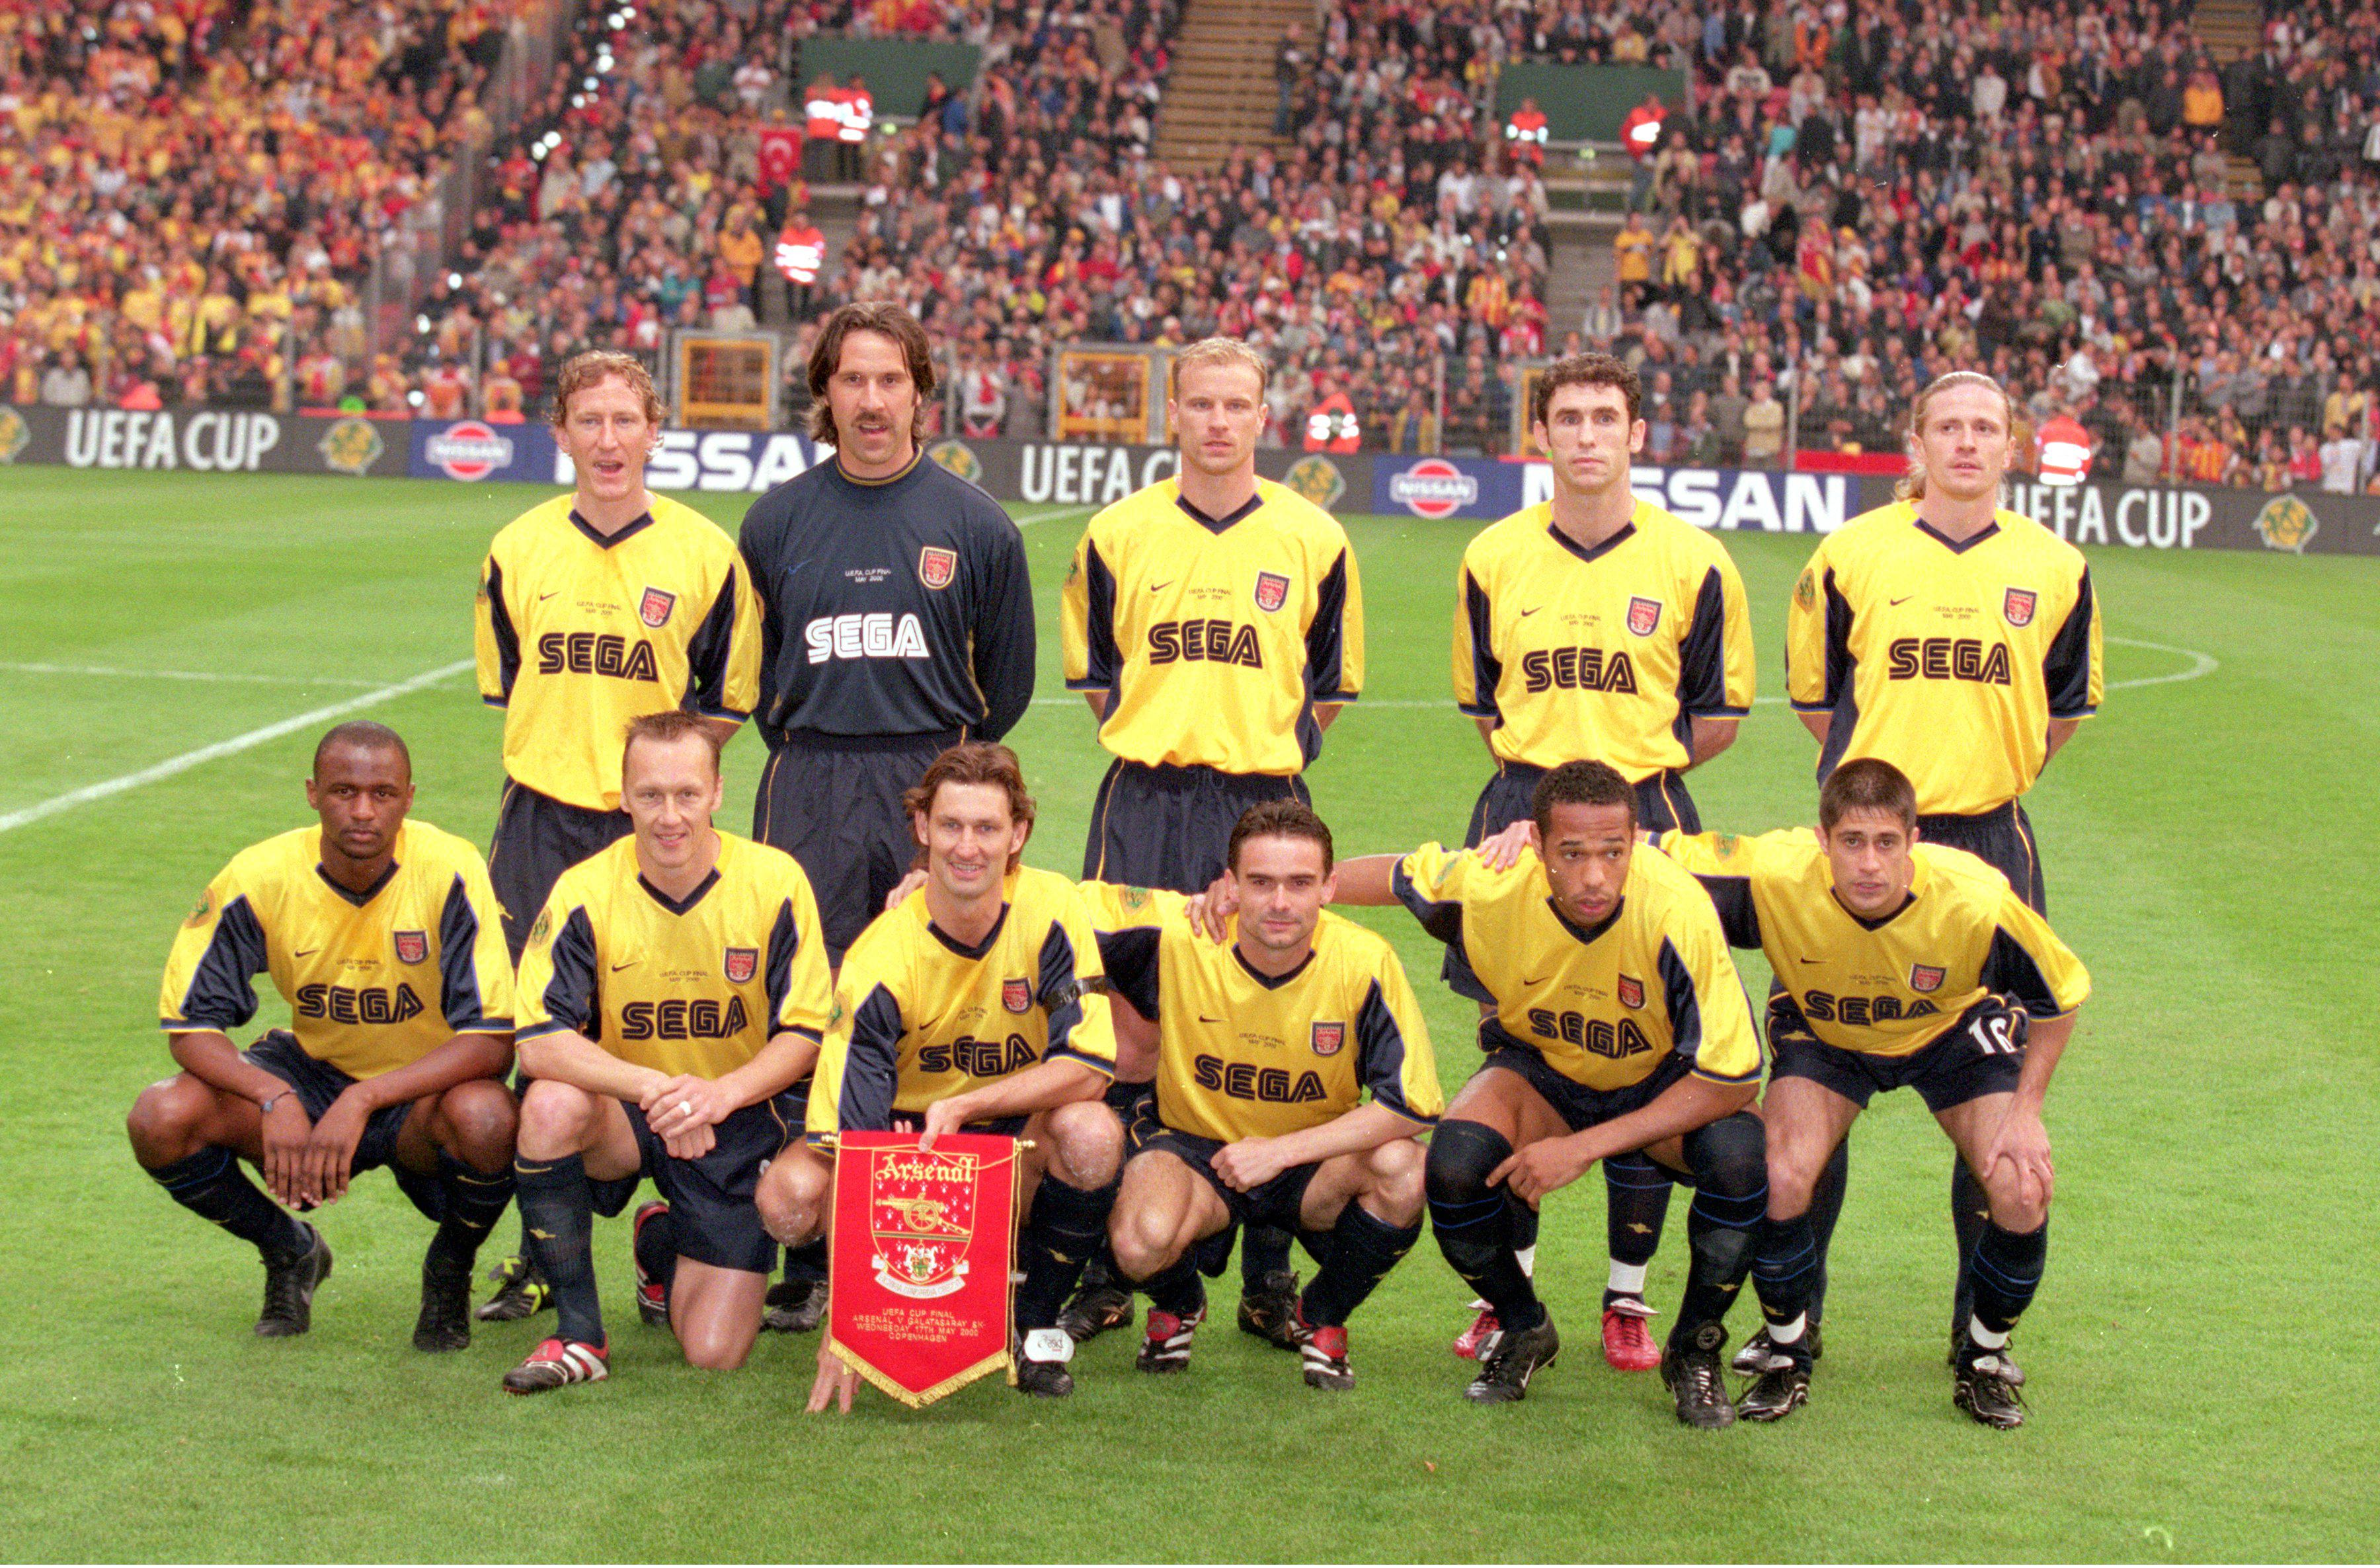 The class of 1999/2000